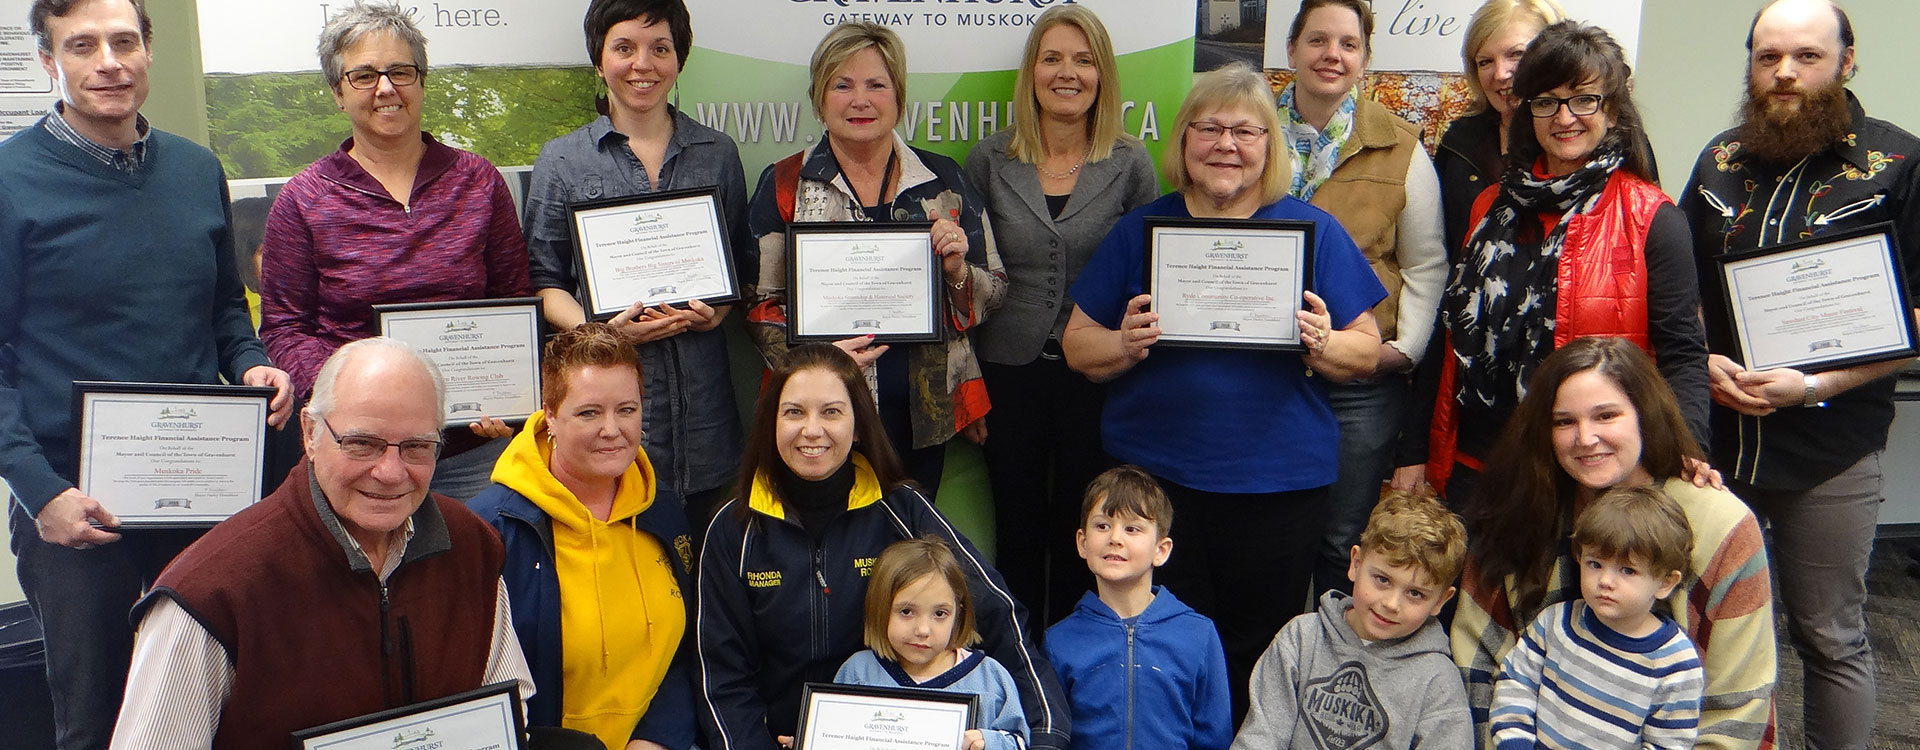 Community Awards, picture of recipients Terence Haight Grant Funding with Mayor